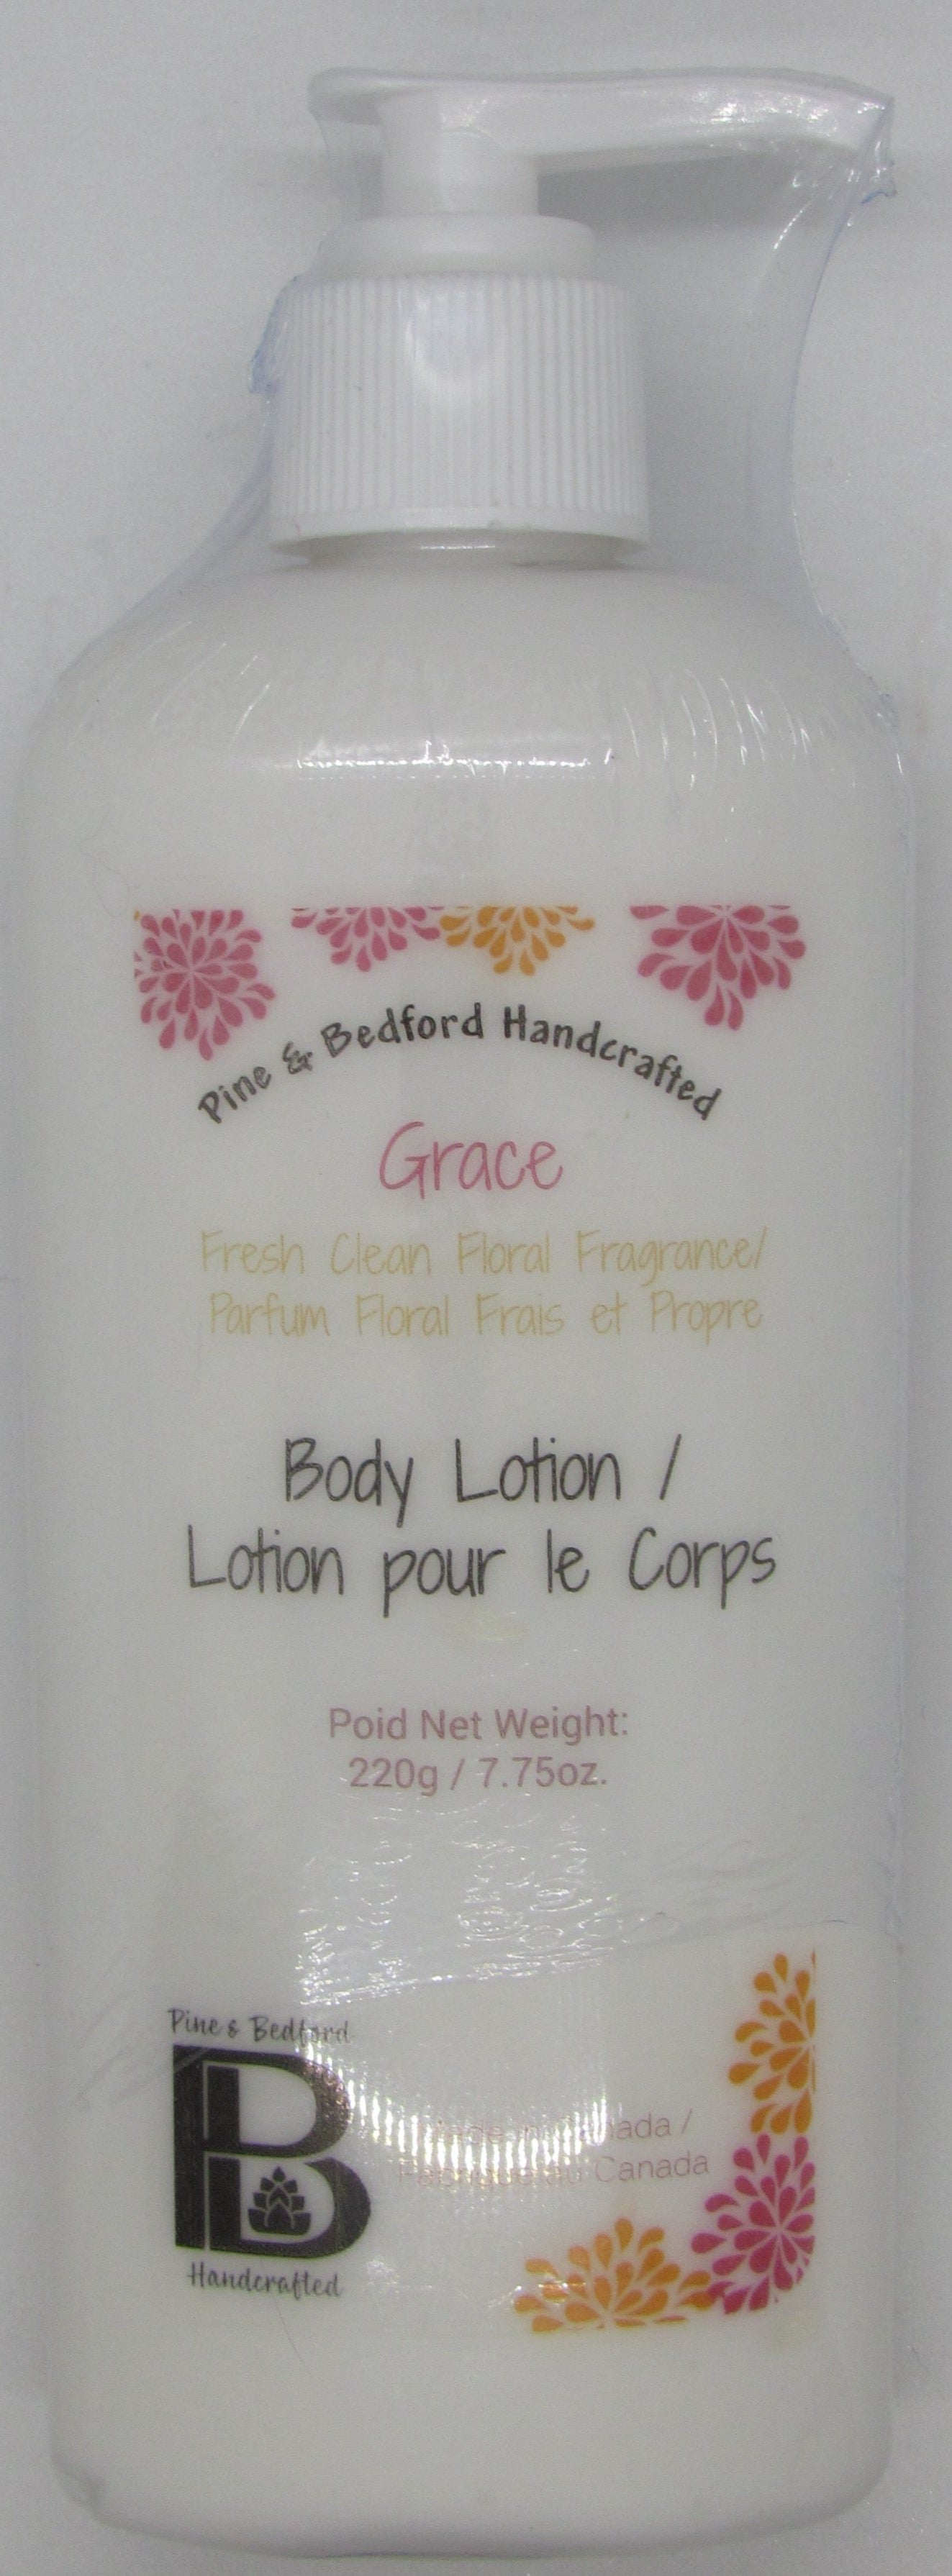 Pine and Bedford's 7.75 oz tall bottle (with dispensing pump) of Body Lotion.  Grace fragrance (Fresh Citrus Floral)